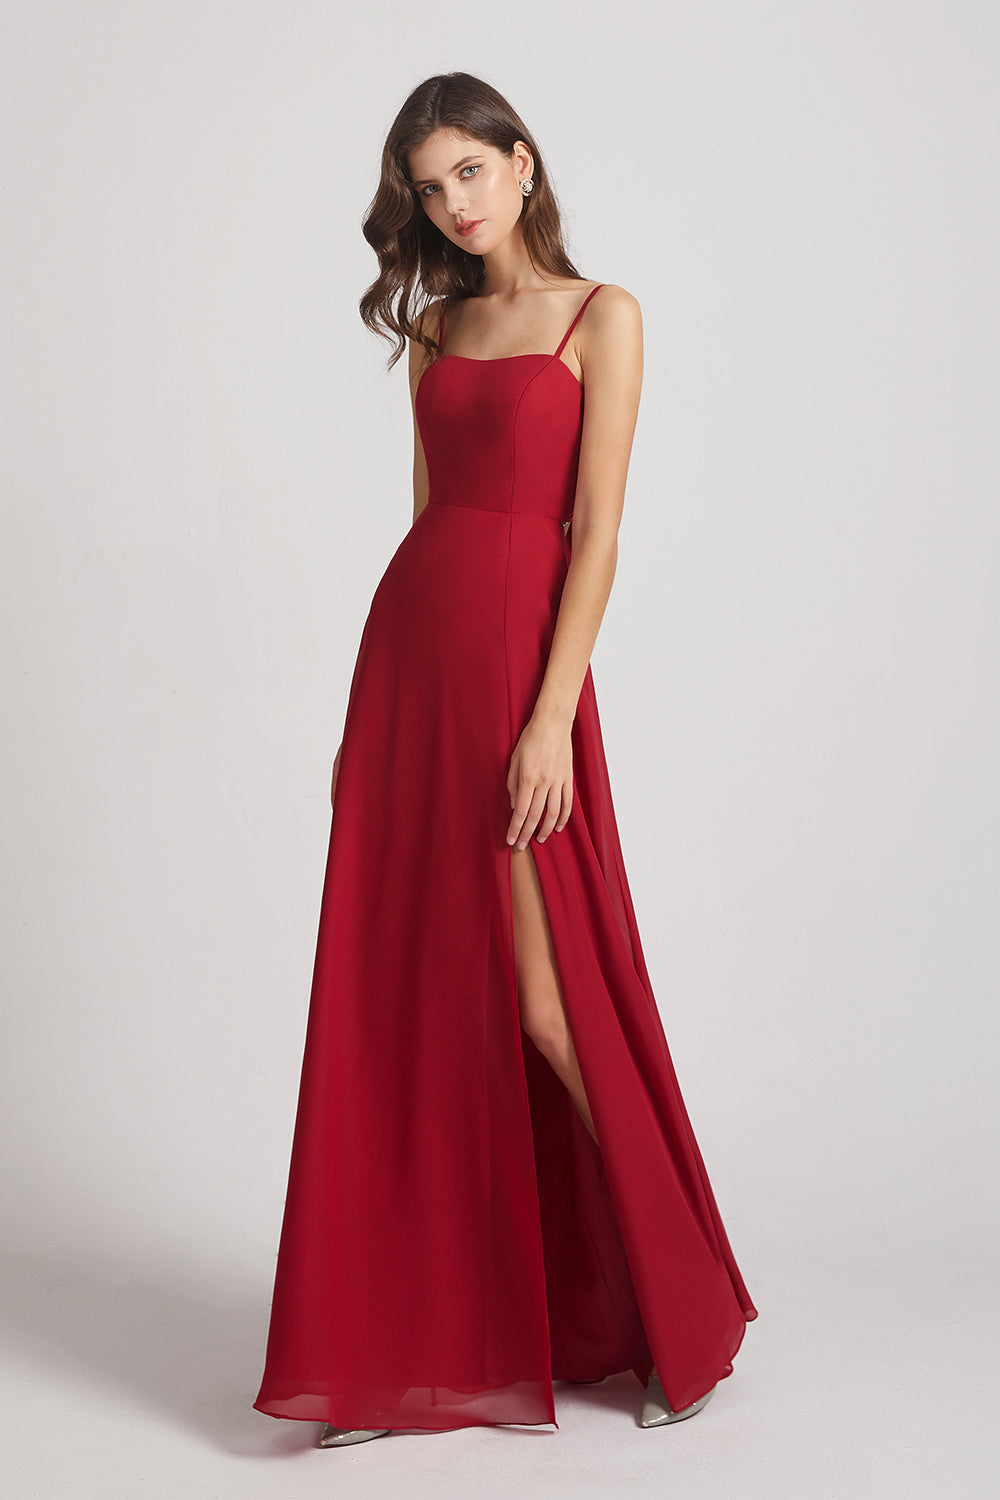 inexpensive bridesmaid gown